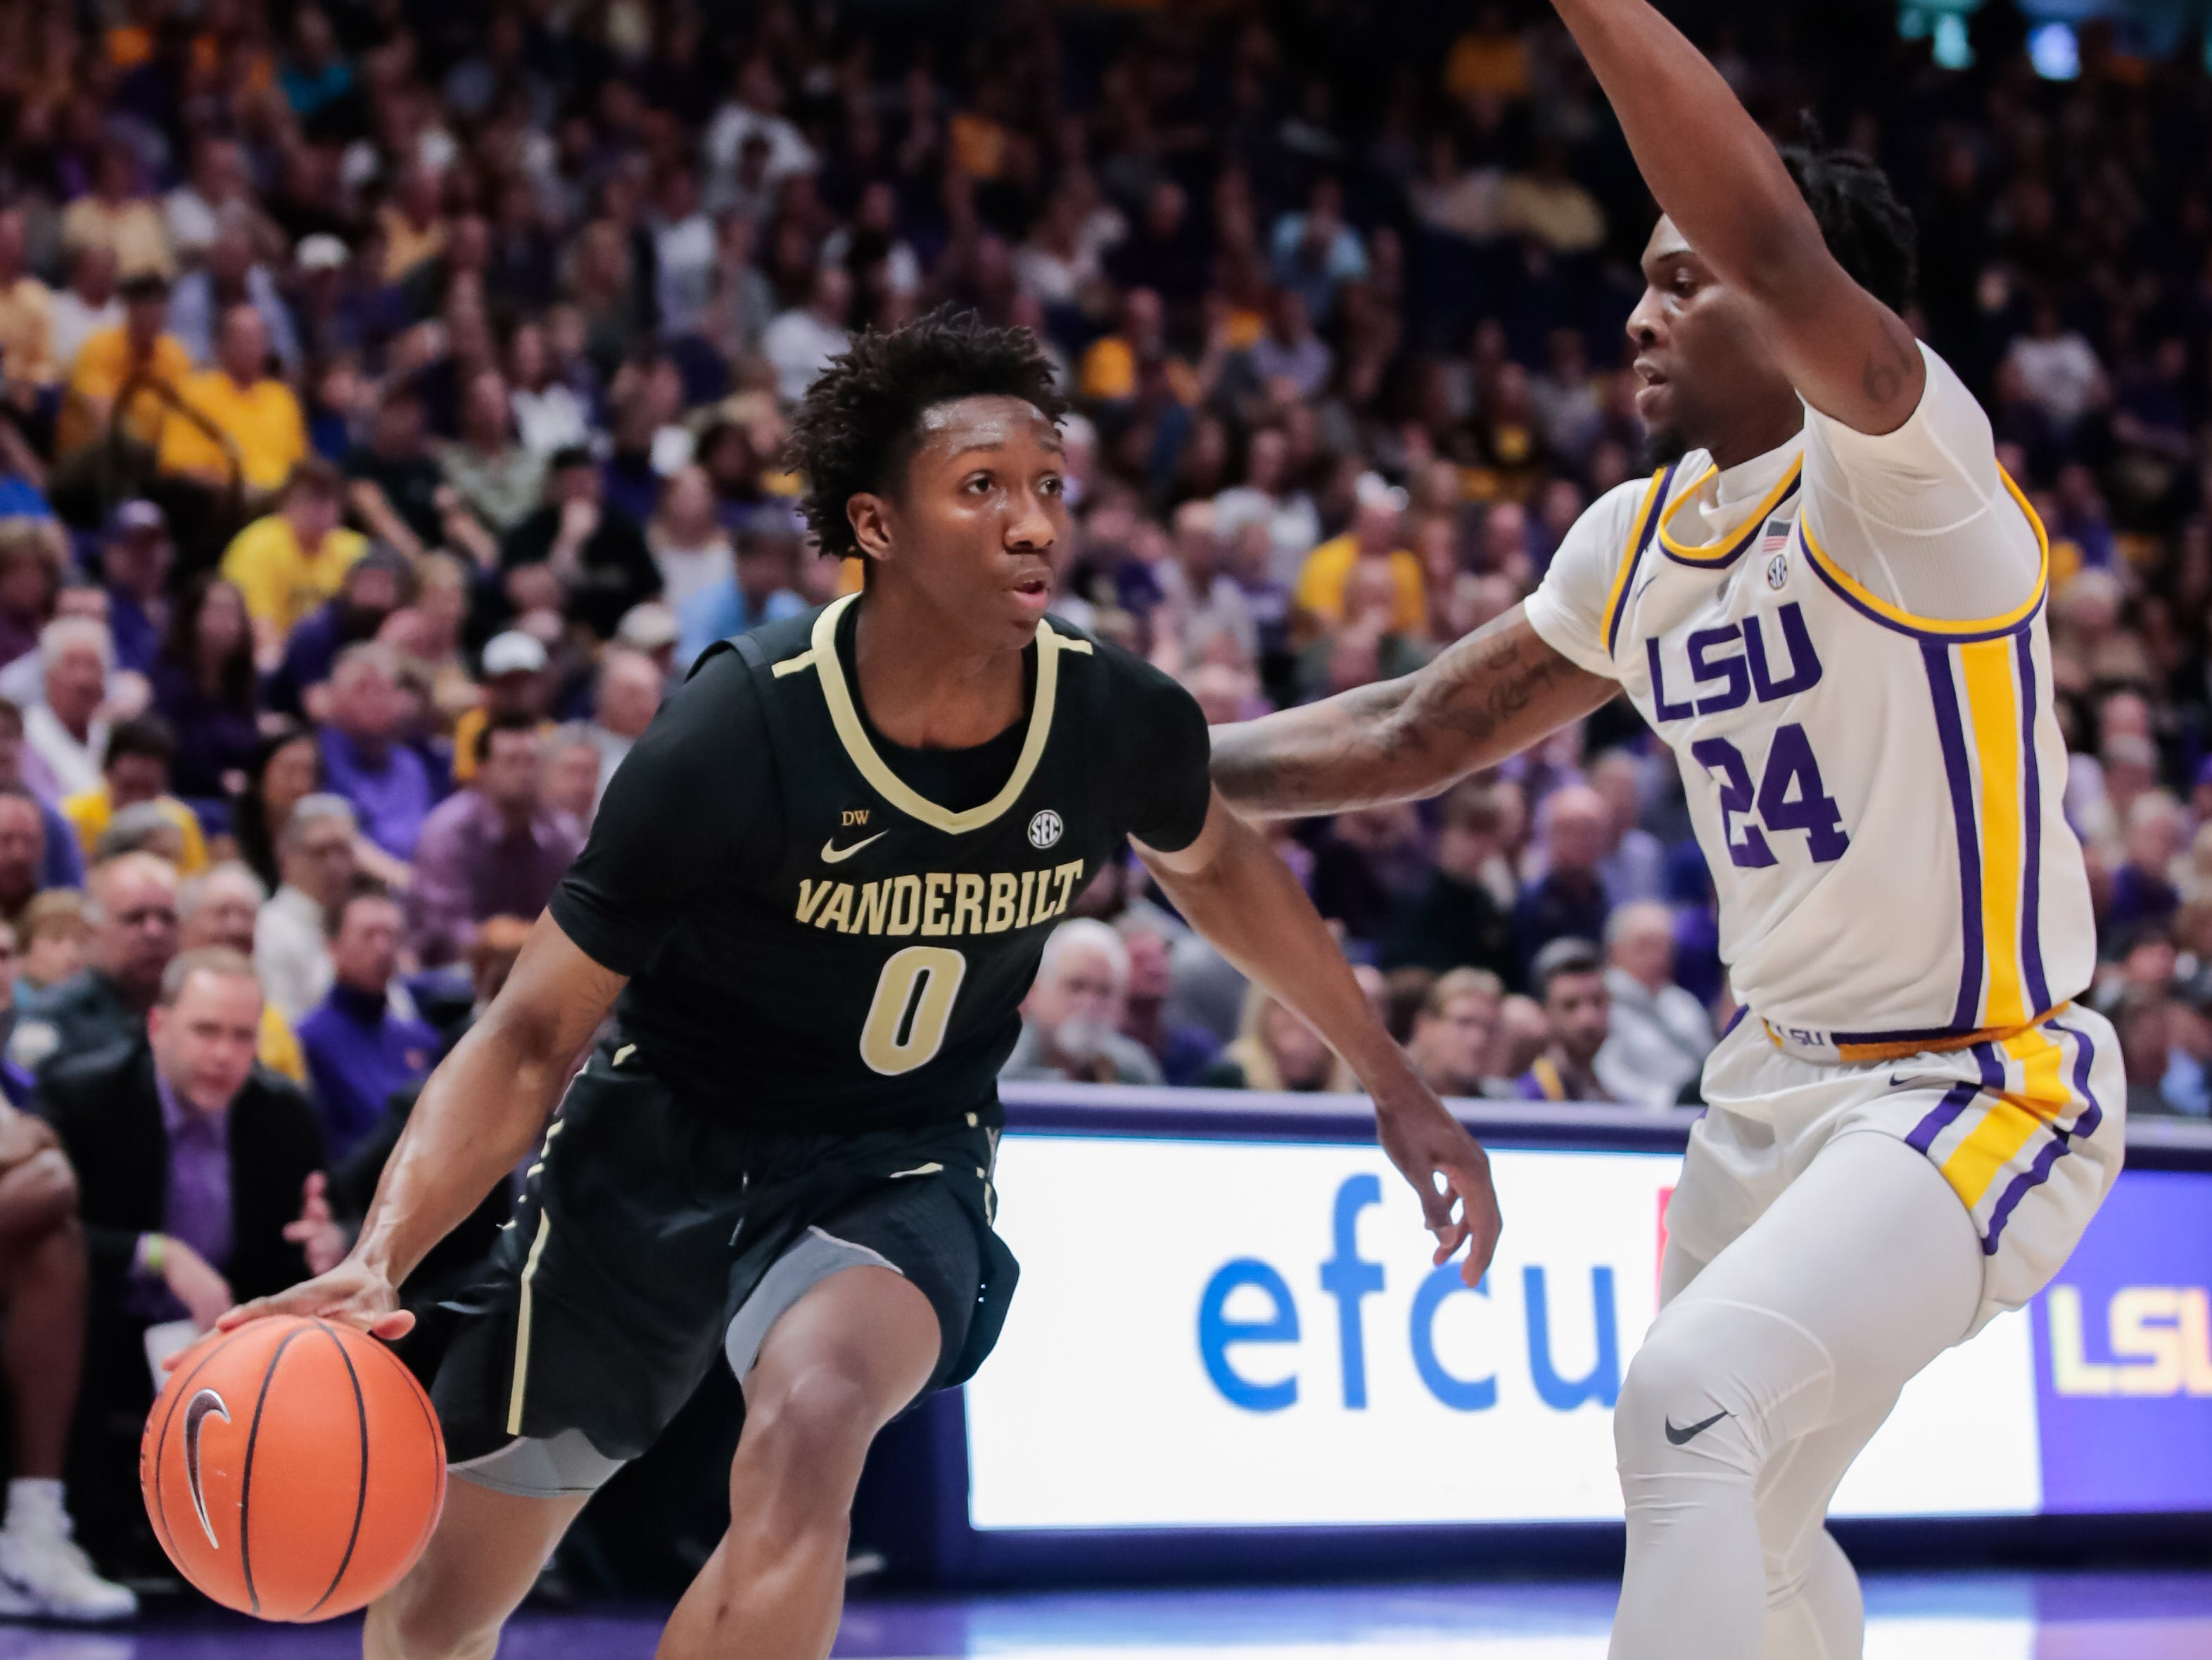 Mar 9, 2019; Baton Rouge, LA, USA; Vanderbilt Commodores guard Saben Lee (0) dribbles against LSU Tigers forward Emmitt Williams (24) in the first half at Maravich Assembly Center. Mandatory Credit: Stephen Lew-USA TODAY Sports